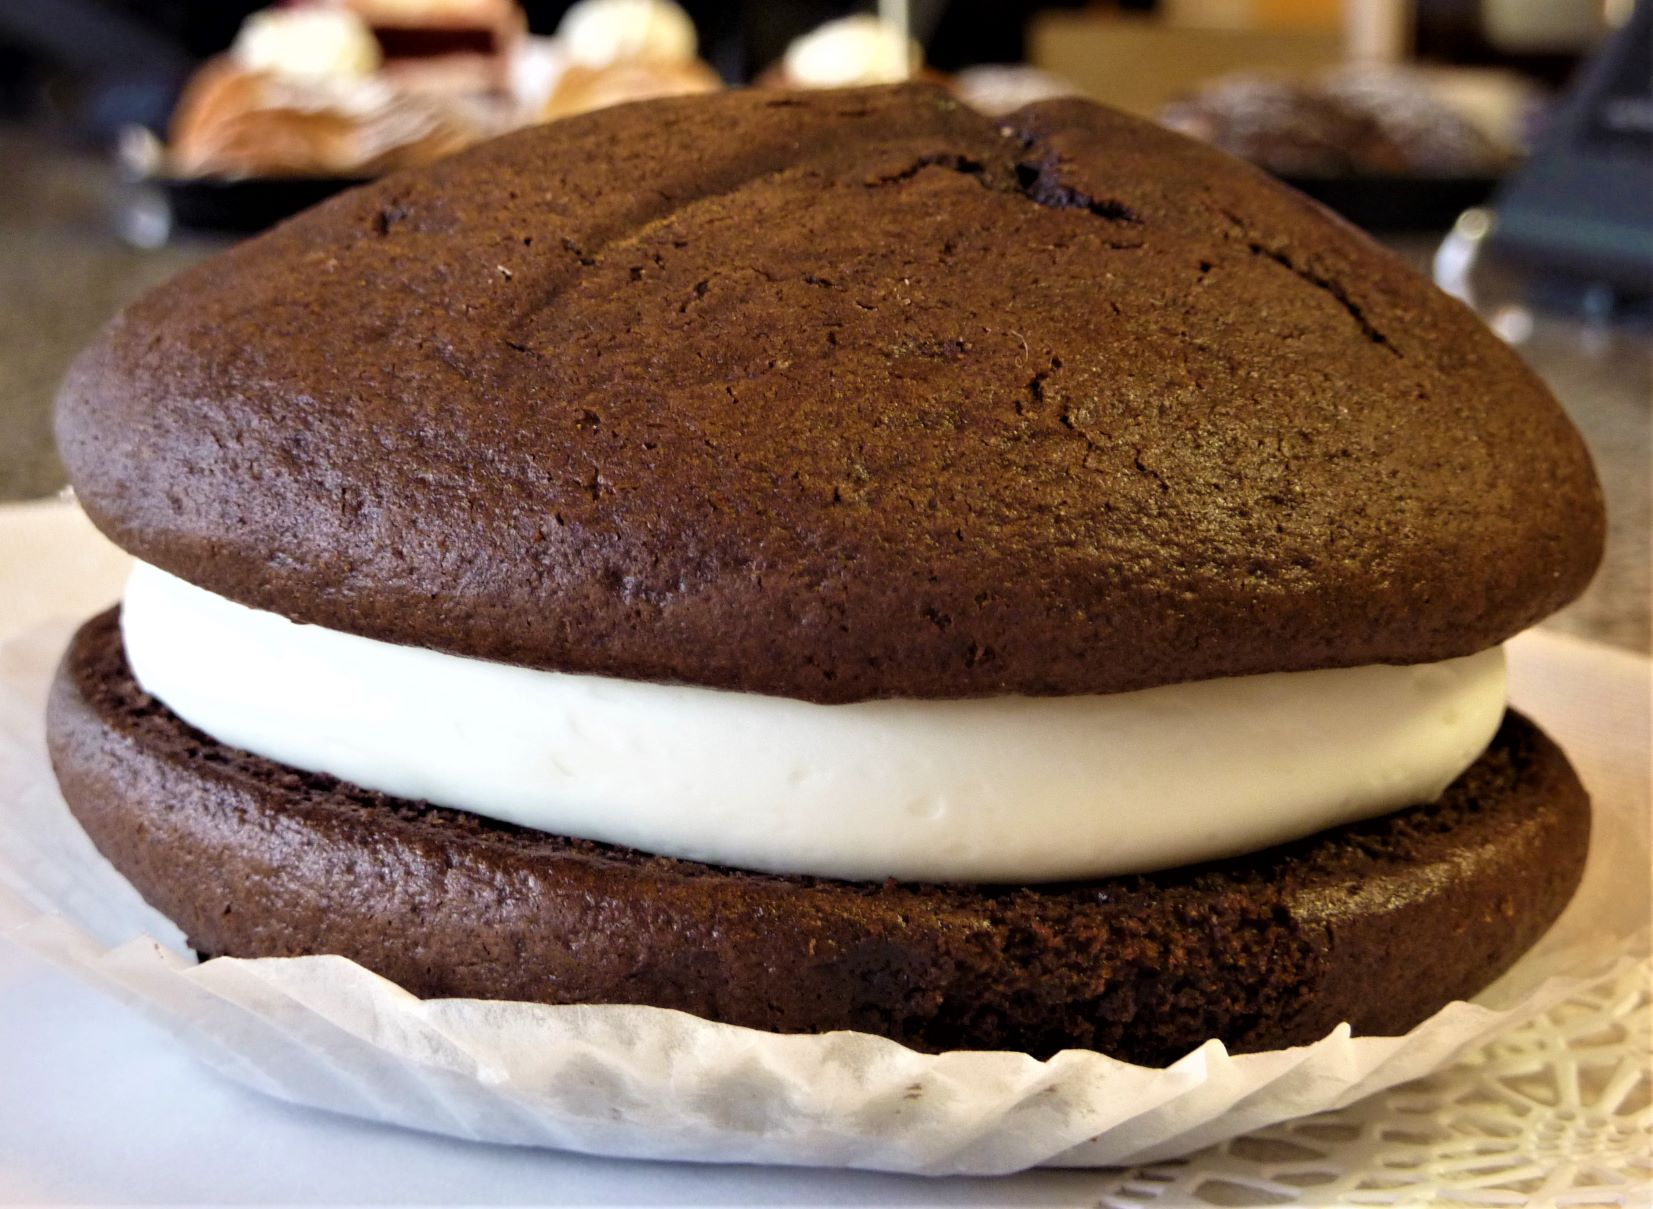 Montilio's whoopie pies at CRISPWalpole in Walpole, Mass.